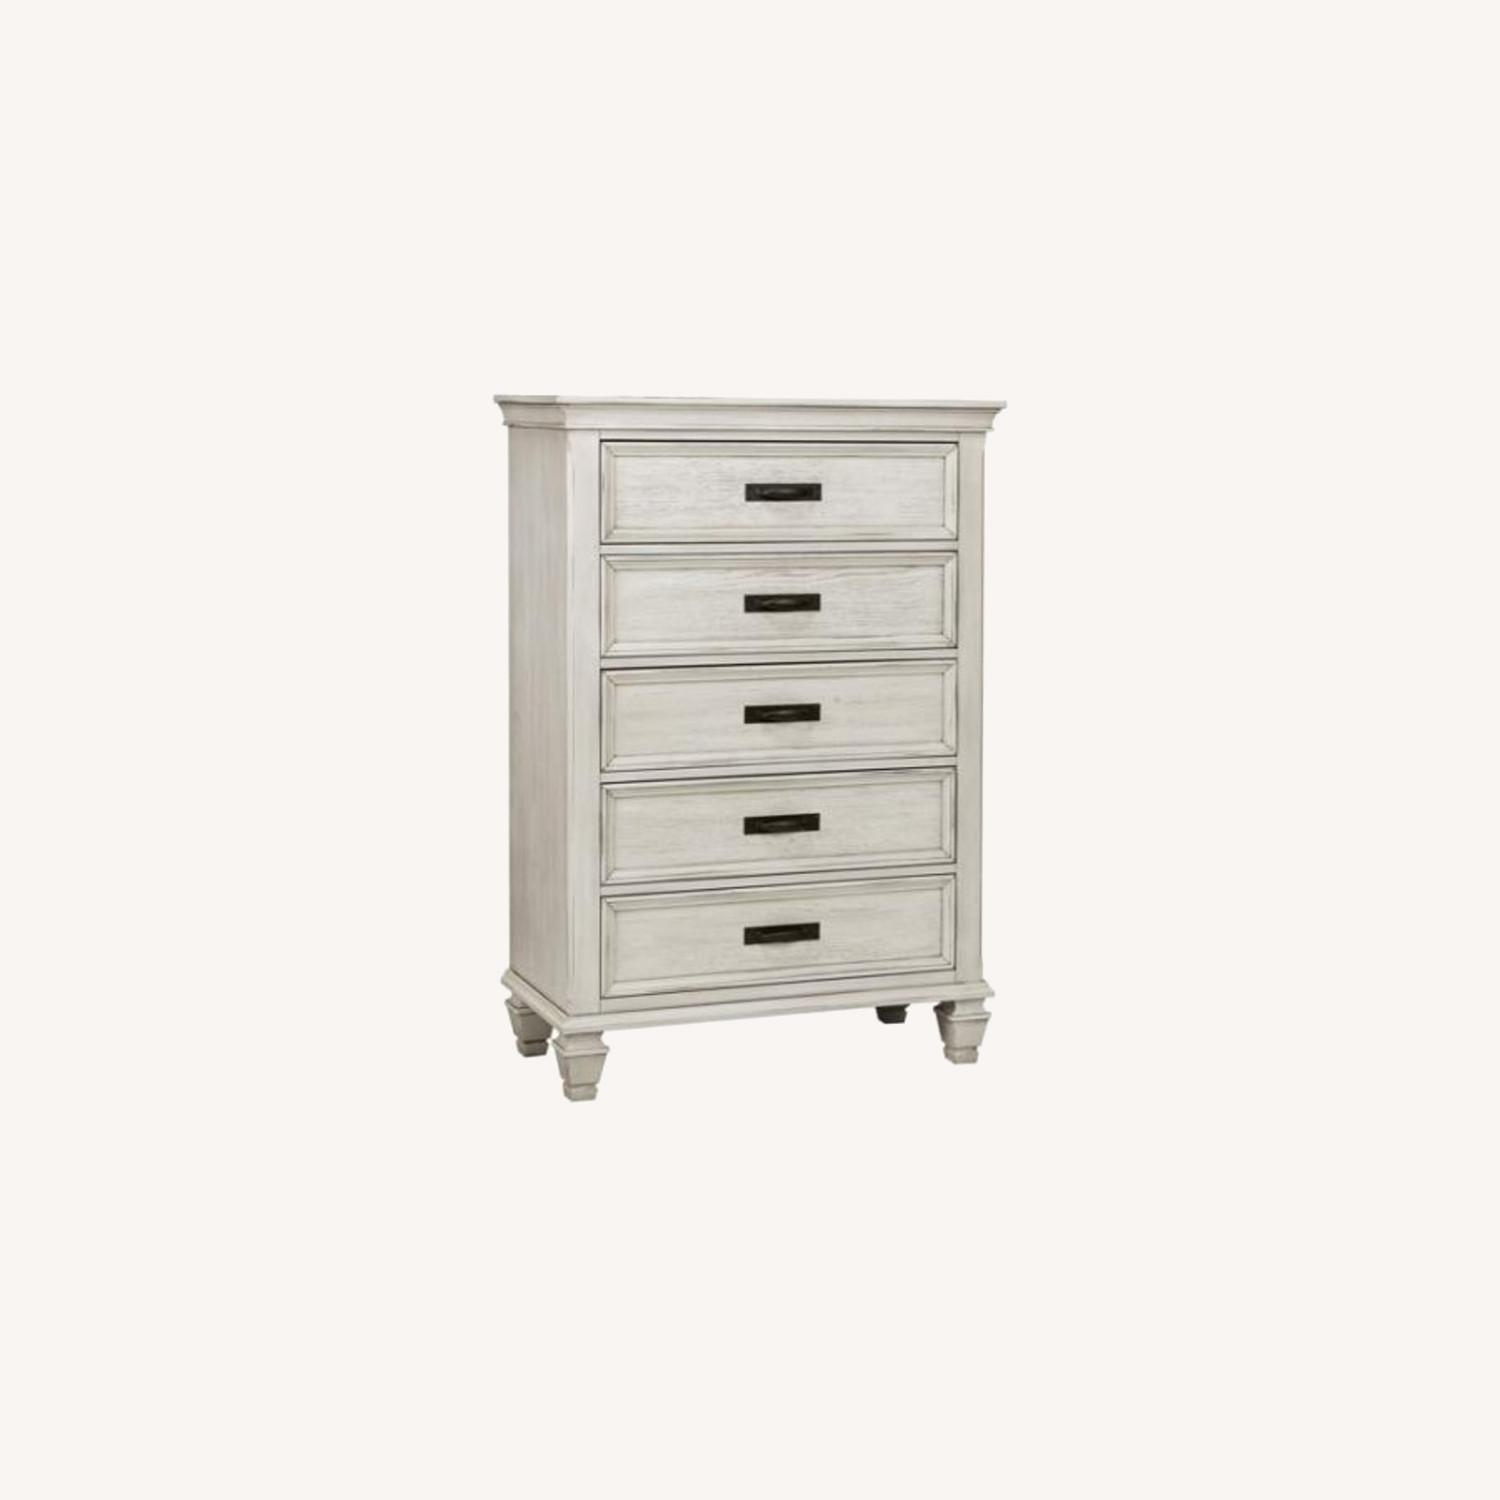 Chest In Warm Antique White Finish W/ Grey Accents - image-5